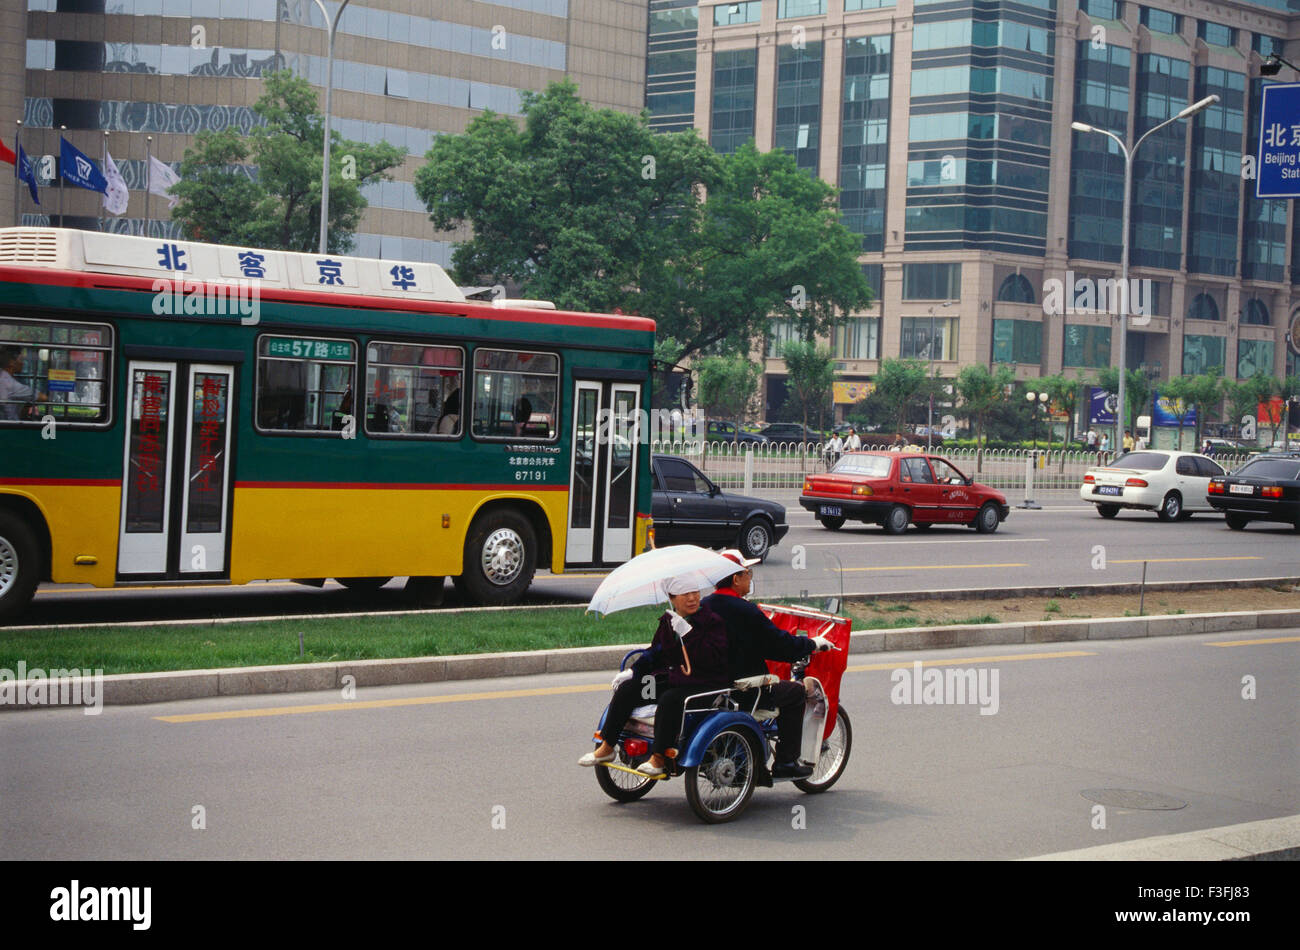 A tri cycle being driven around in the city ; China - Stock Image